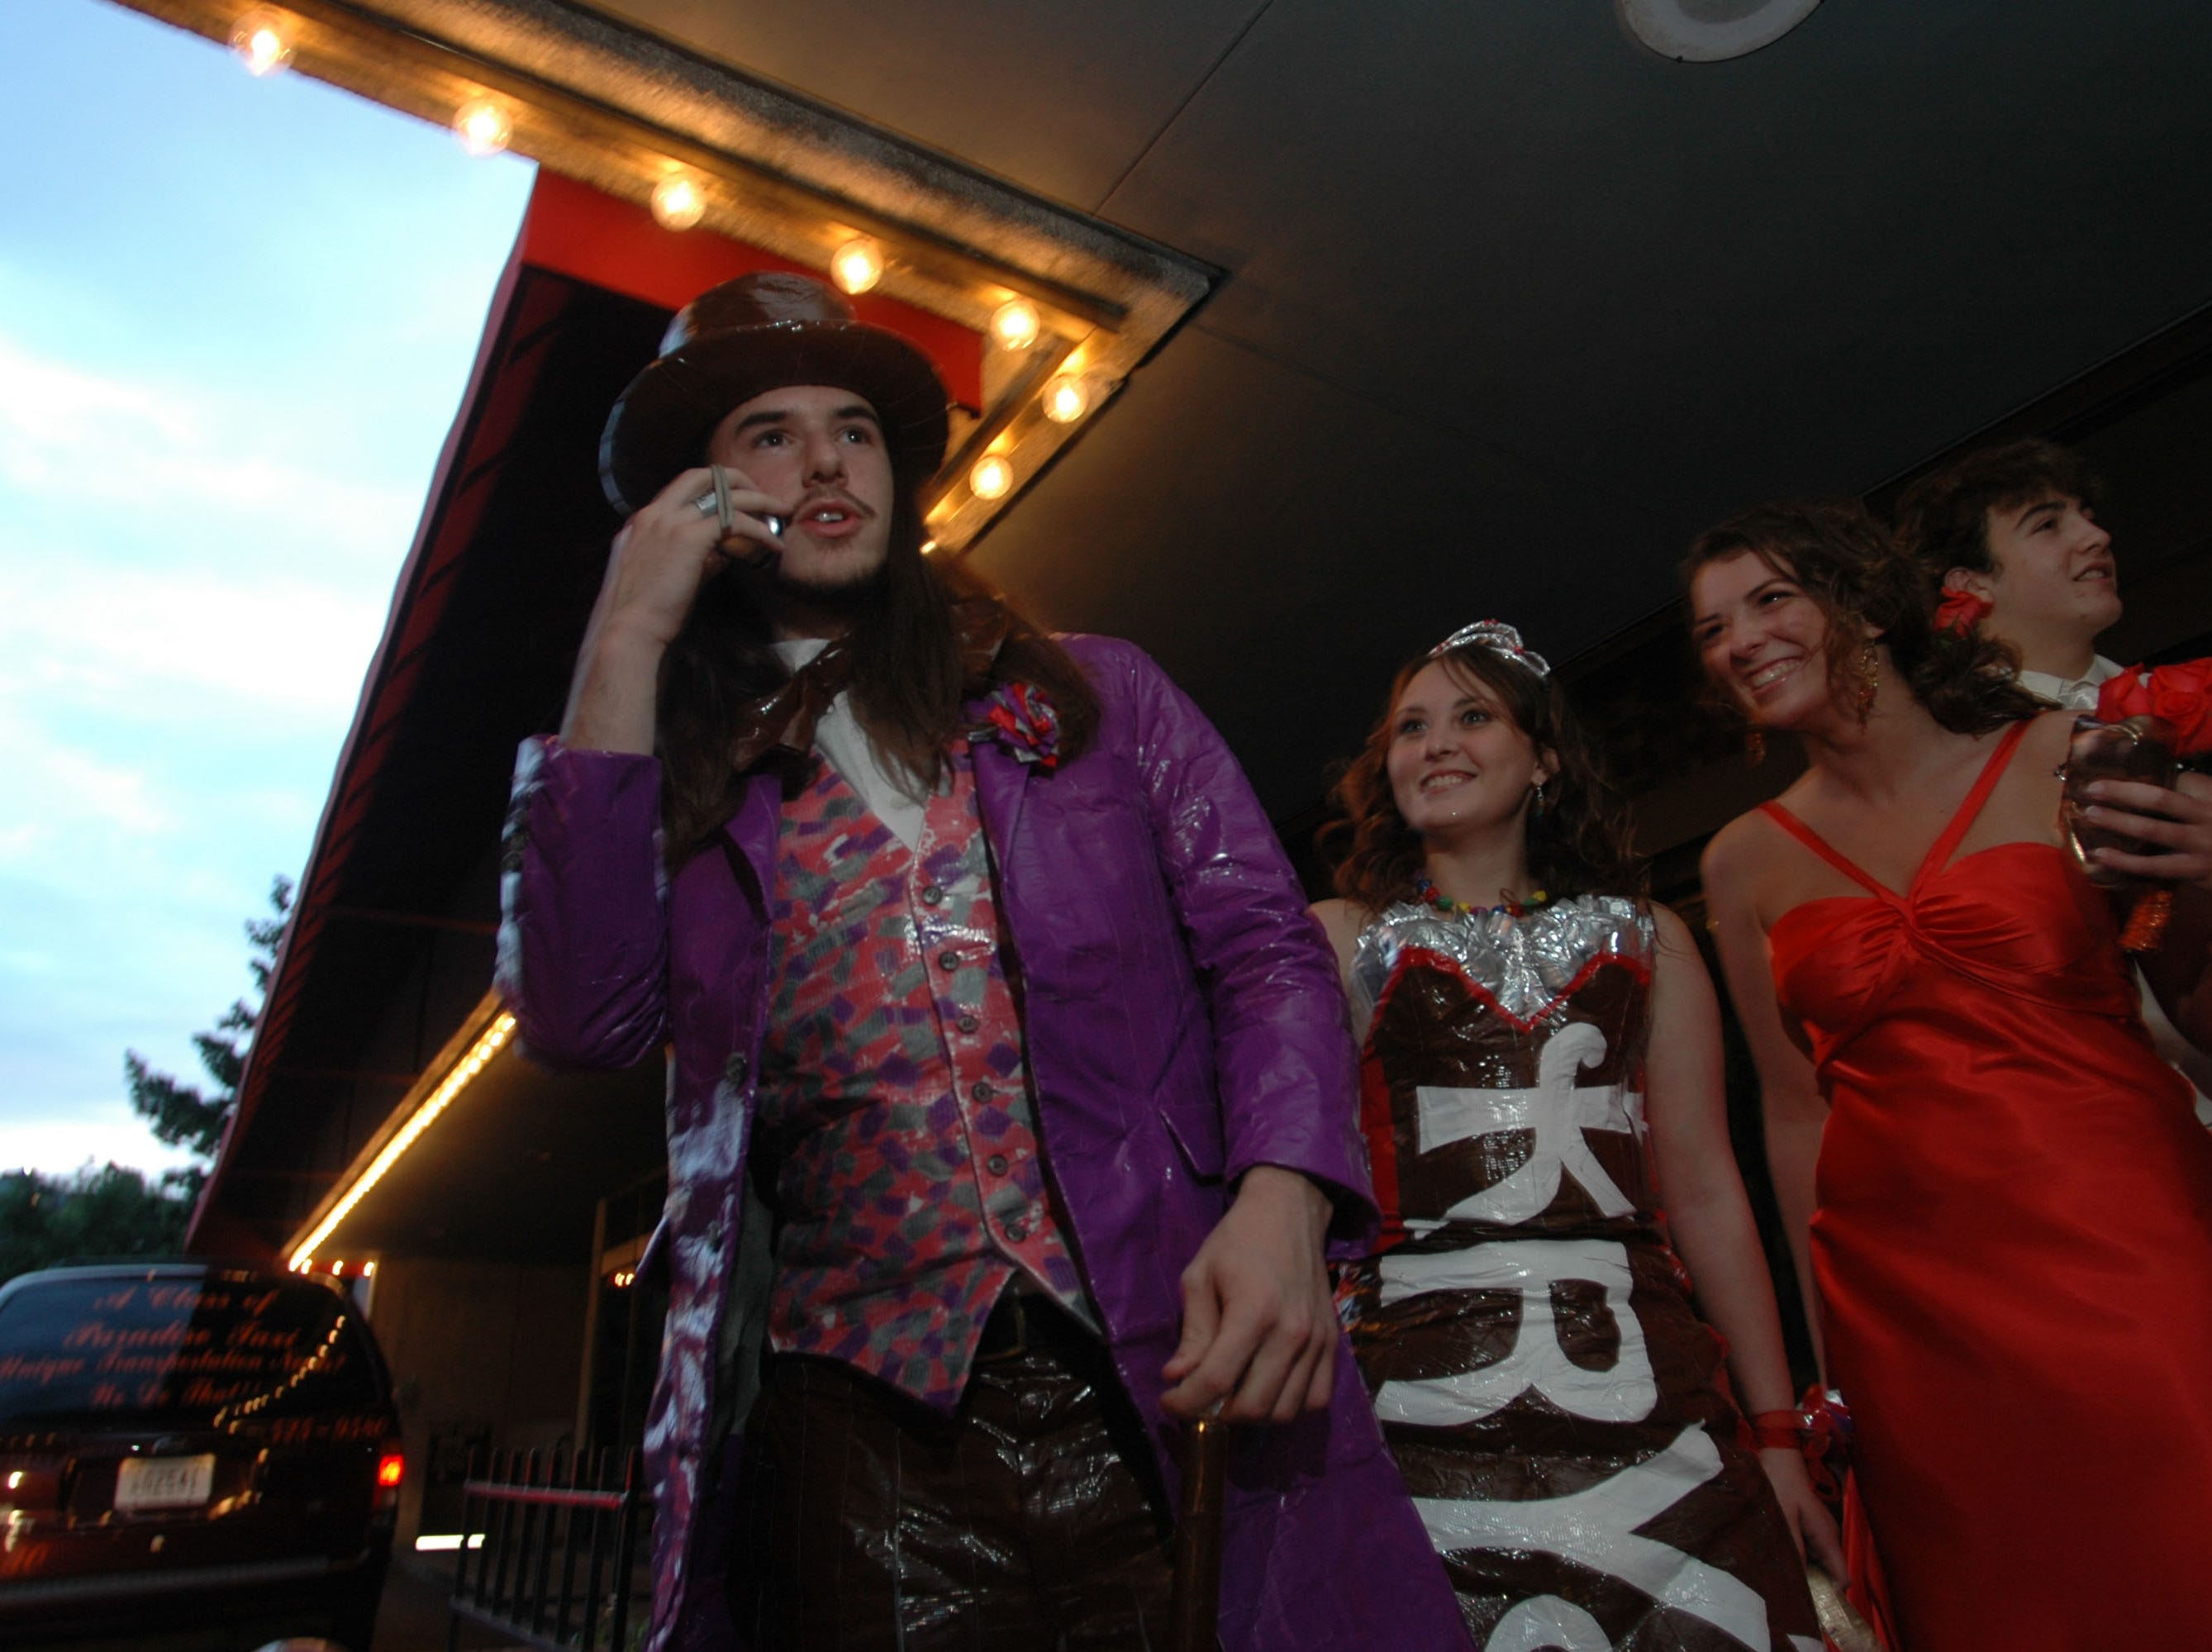 T.J. Daugherty, left, talks to a friend on his cell phone while is date Krystle Gutman, and their friends Leslie Spitzer and her date Dylan Ryan wait for Elvis Impersonator Ray E. Robbins to escort them into to the Clinton High School Prom Saturday night at the Crowne Plaza Hotel. Gutman and Daugherty made their outfits using different color duct tape made to resemble the original Willy Wonka and the Chocolate Factory characters. 05/13/2006.